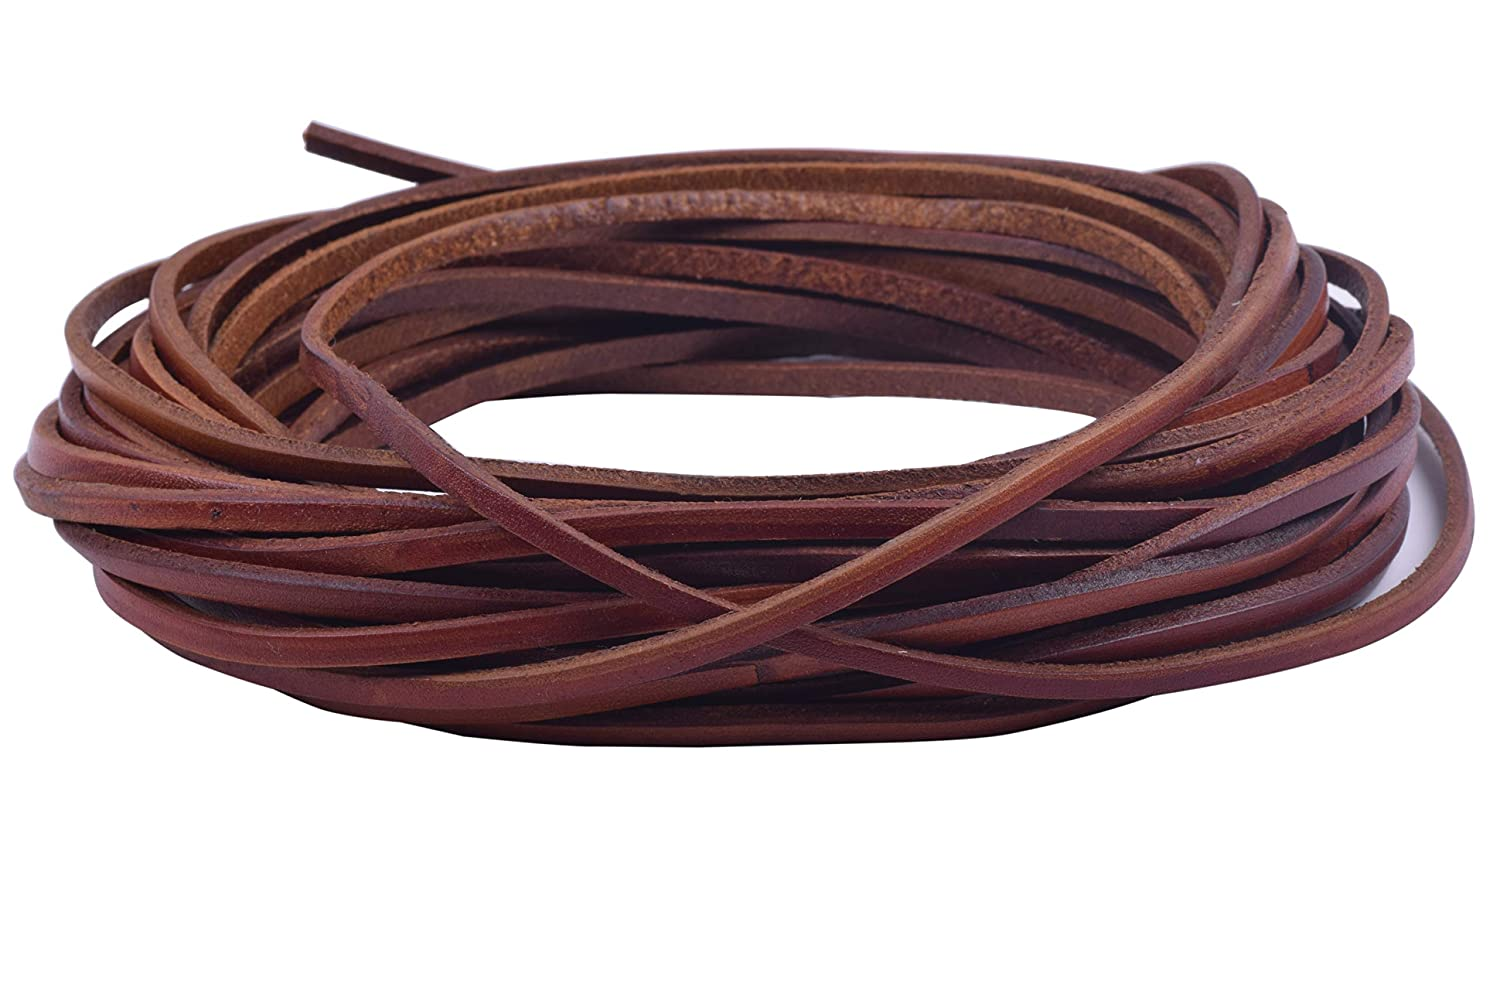 KONMAY 10 Yards 5.0x2.0mm Vintage Brown Soft Flat Topgrain Genuine//Real Cowhide Leather Lacing Strips